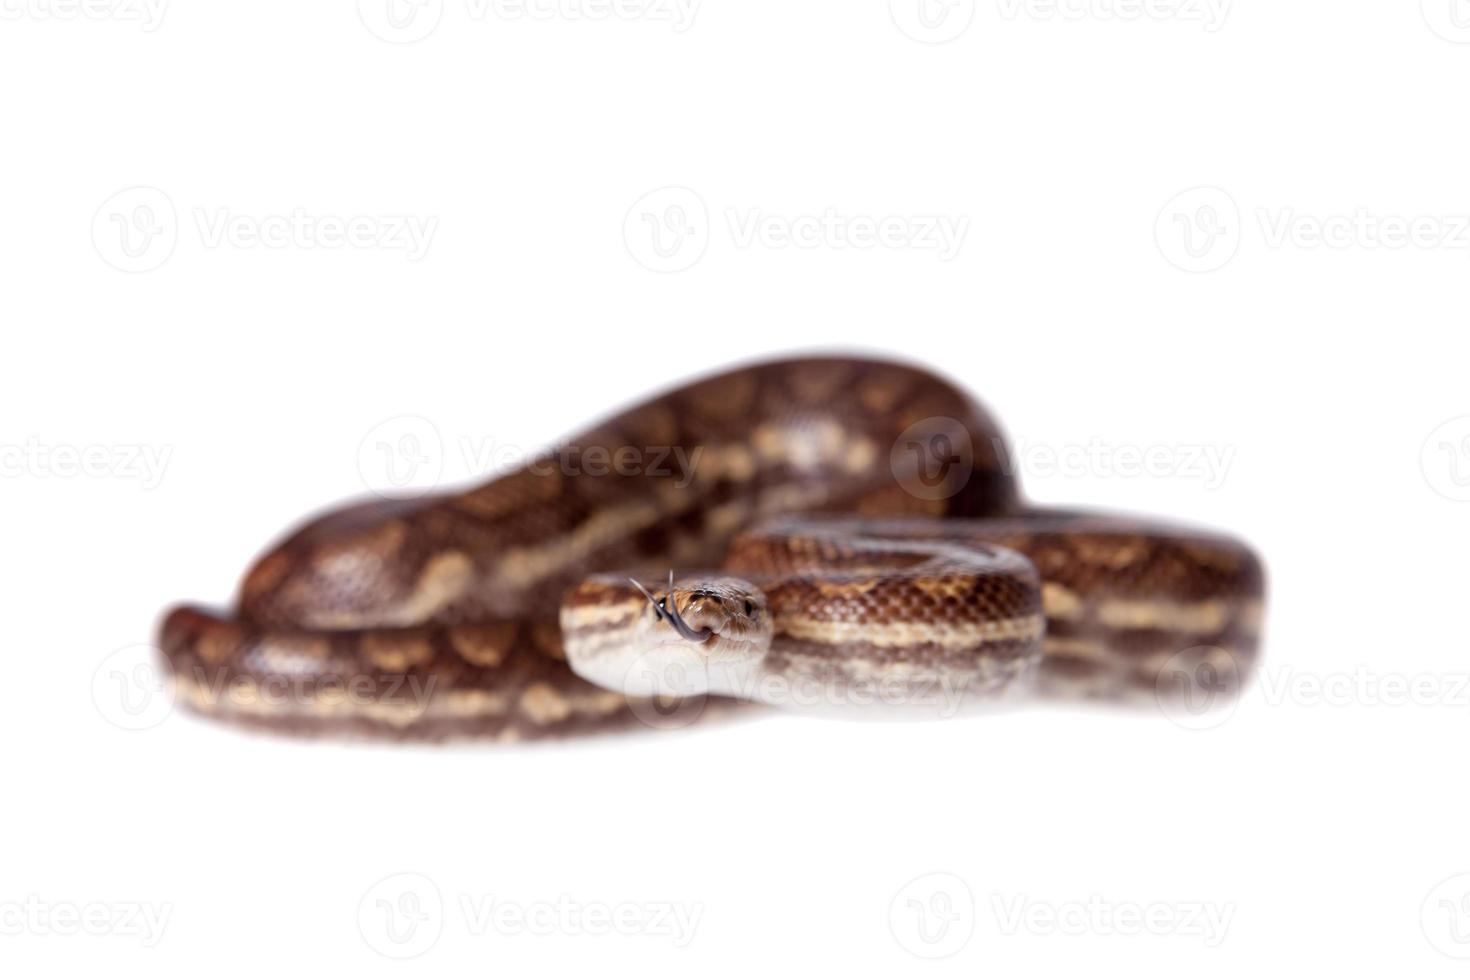 Rainbow tree boa on white background photo